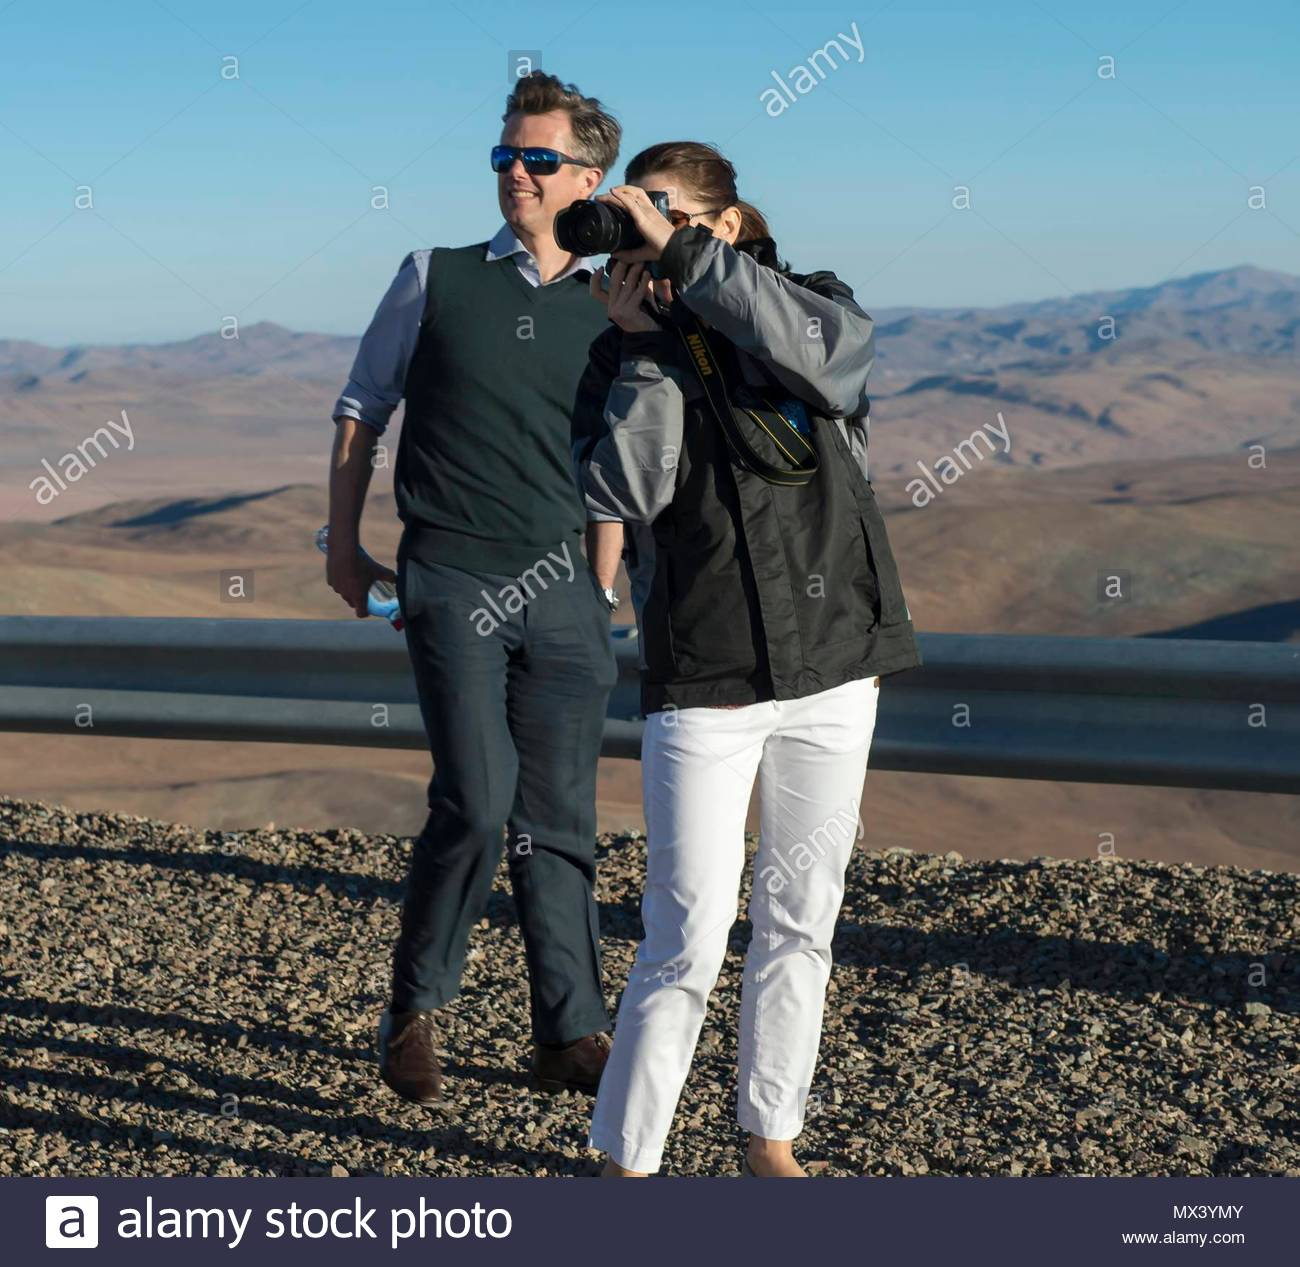 crown-prince-frederik-and-crown-princess-mary-crown-prince-couple-on-an-official-visit-to-chile-crown-prince-frederik-and-crown-princess-mary-at-the-eso-european-southern-observatory-in-paranal-antofagasto-chile-code-03799mh-photo-martin-hoeienall-over-press-denmark-MX3YMY.jpg